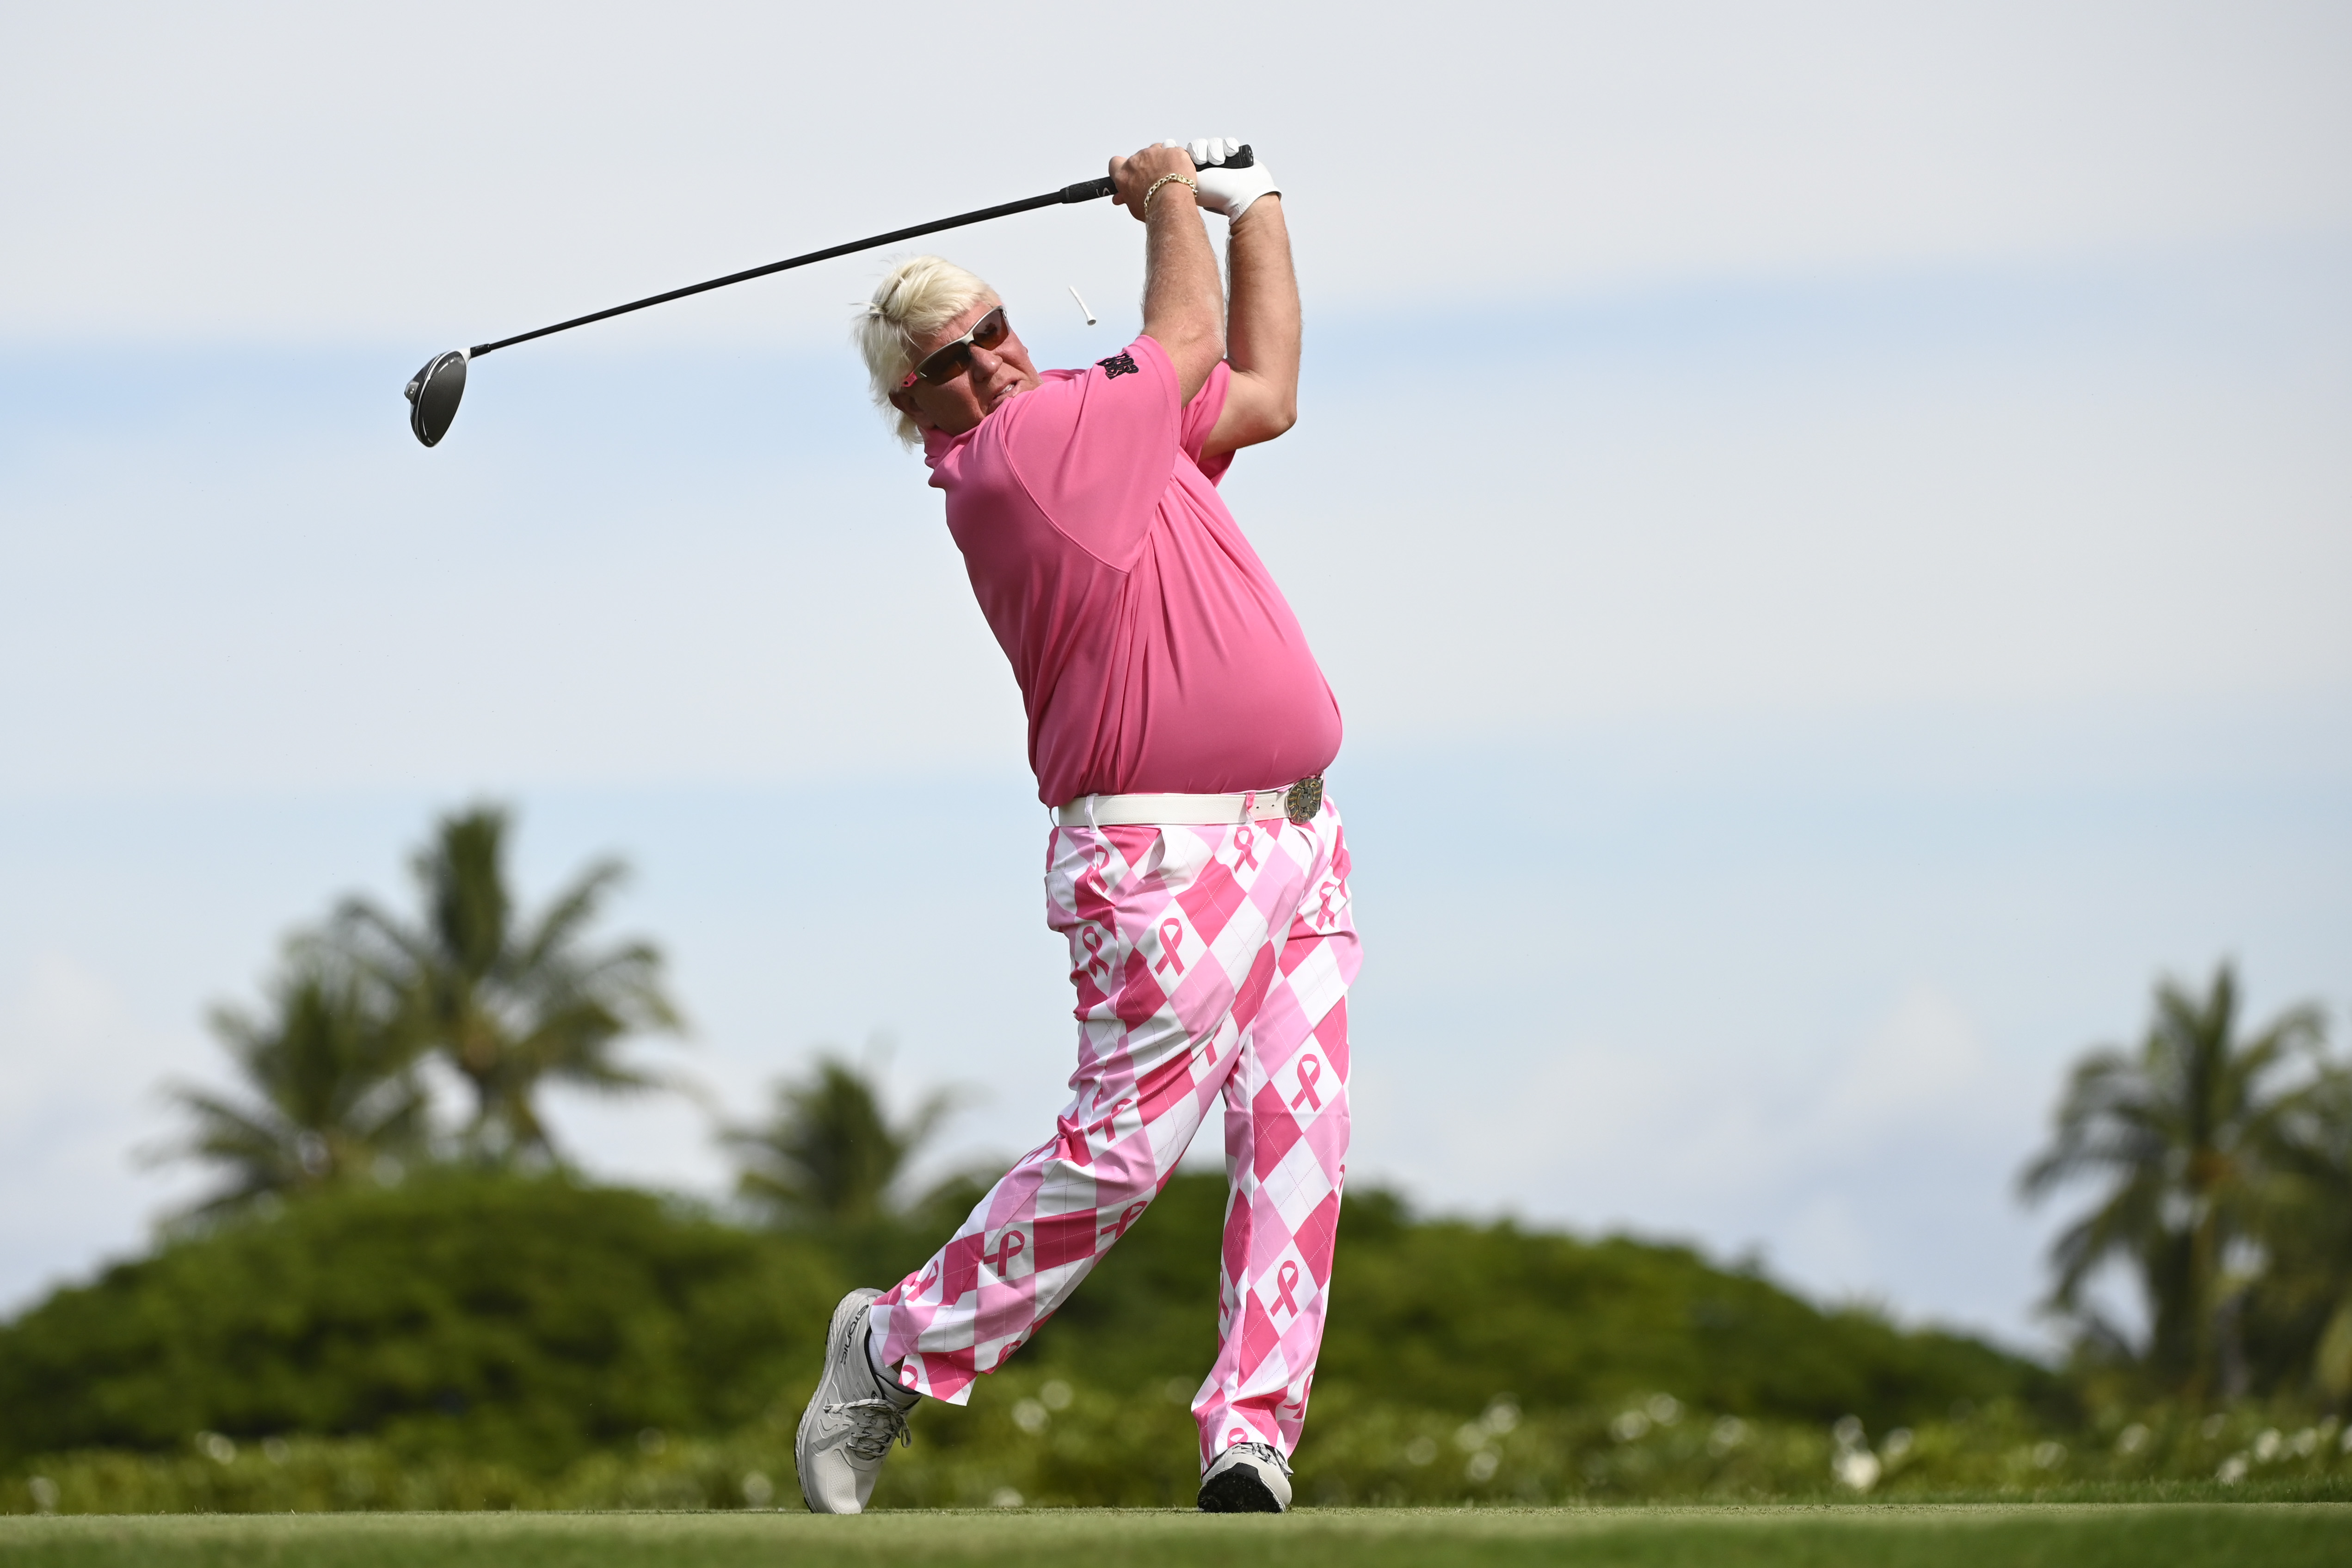 John Daly's Diet Consisted of 18K Cigarettes, 515 Gallons of Soda Per Year